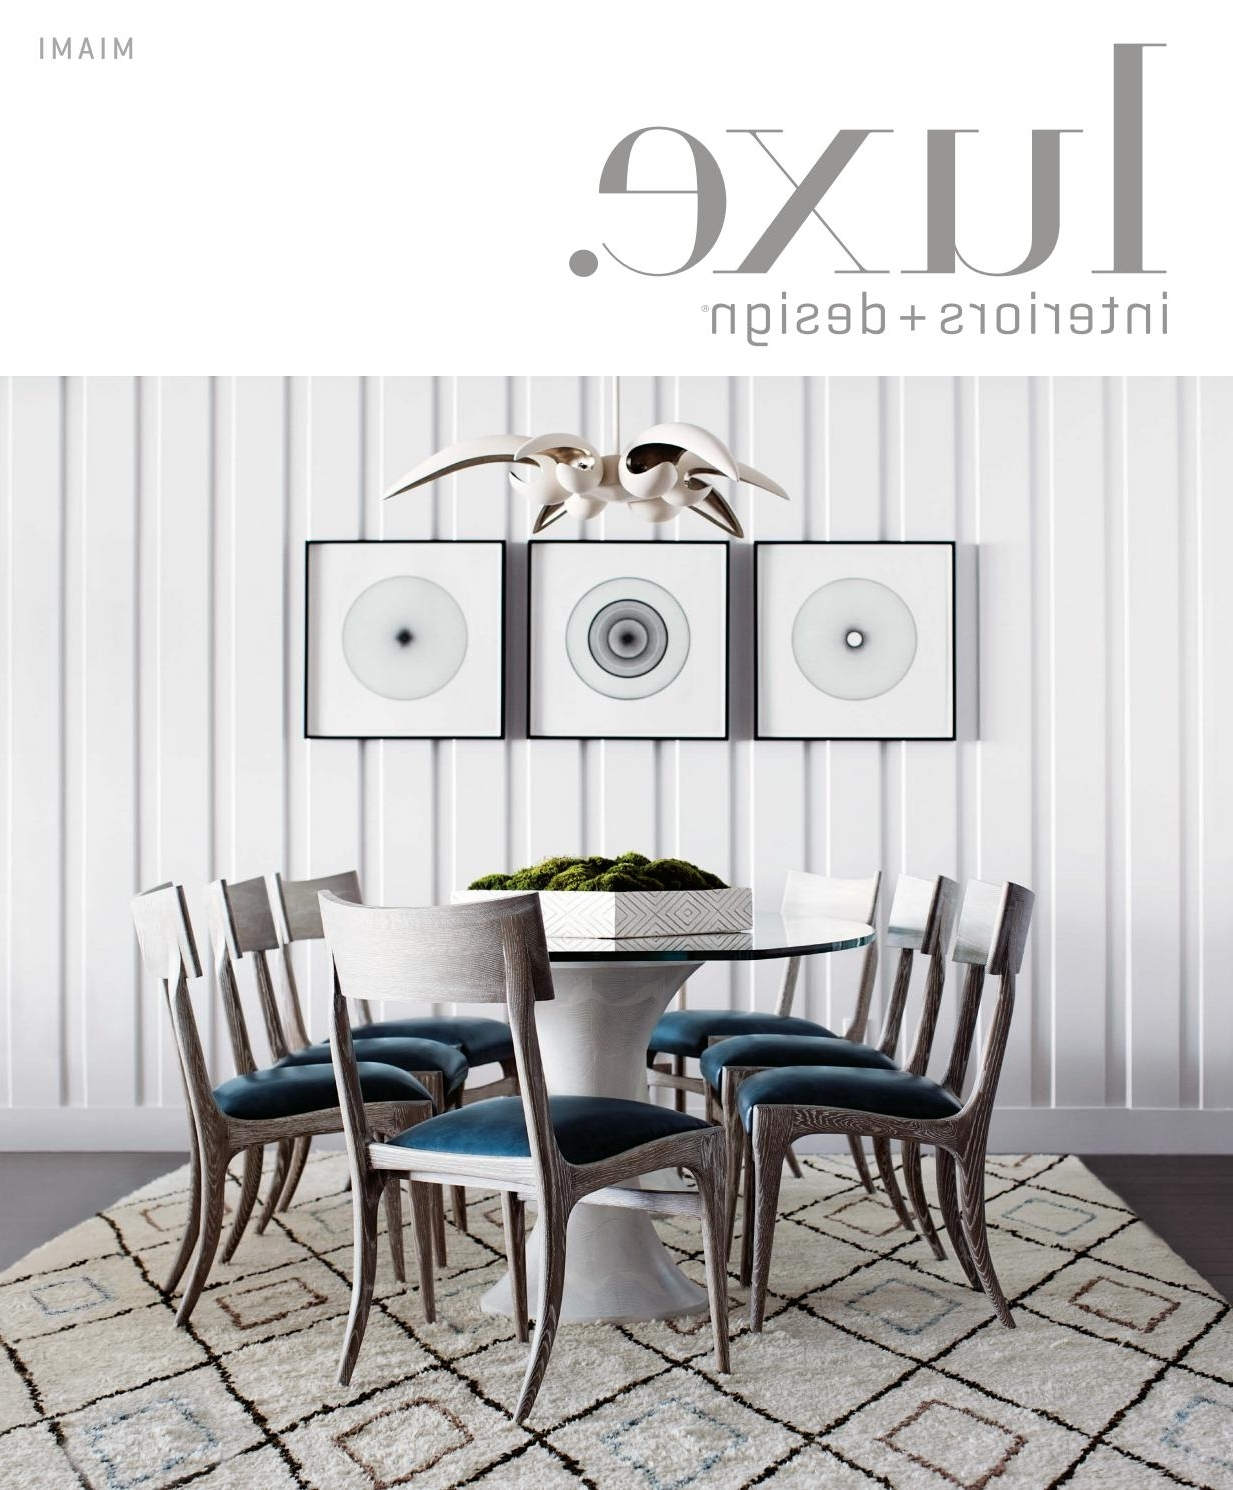 Luxe Magazine July 2016 Miamisandow® – Issuu Inside Widely Used Palazzo 7 Piece Dining Sets With Pearson White Side Chairs (View 10 of 25)